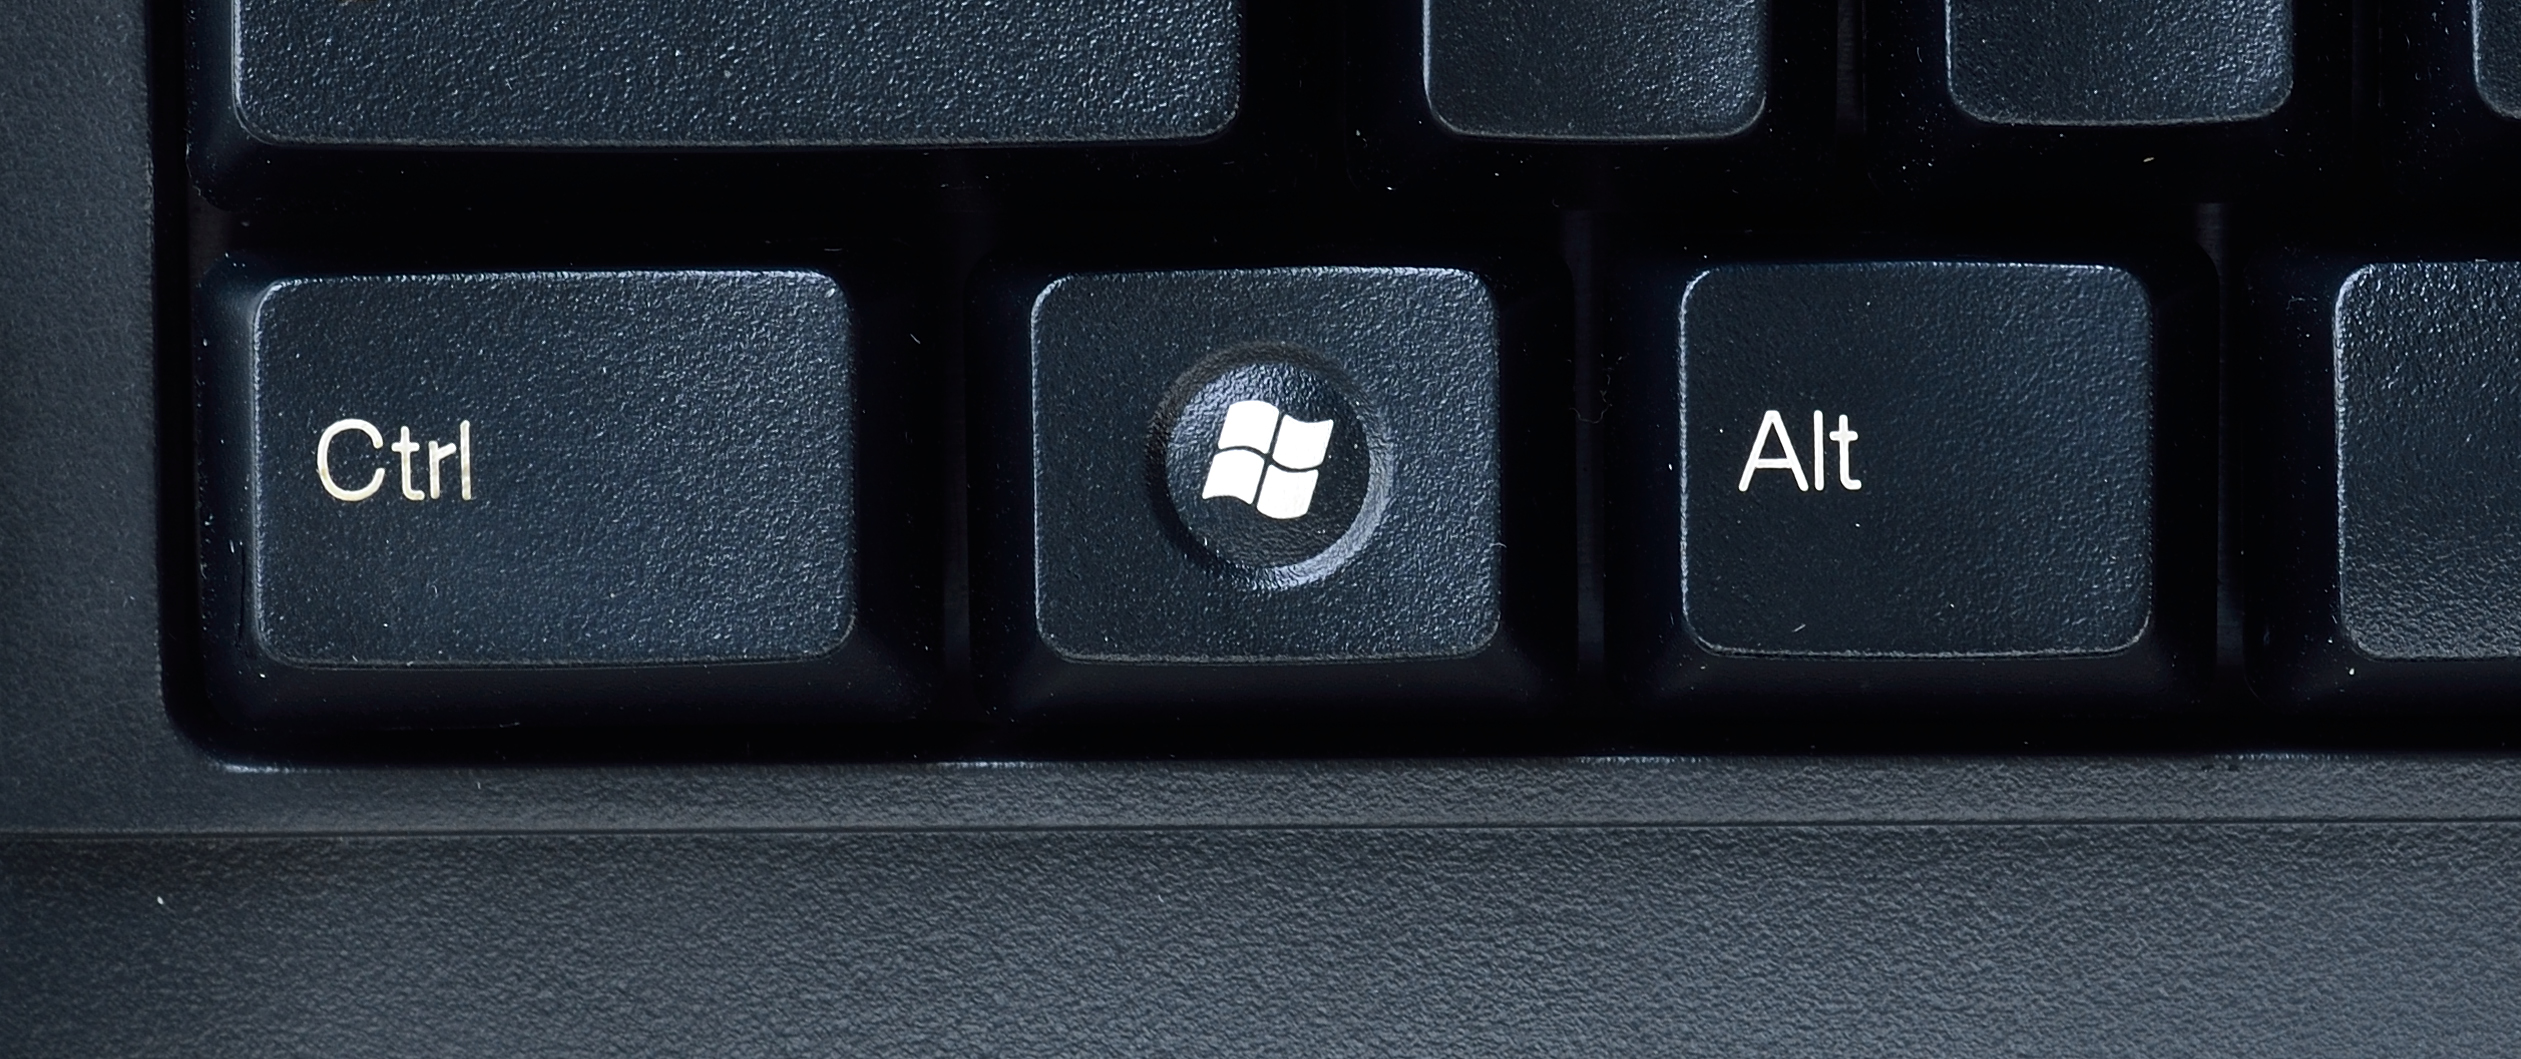 Windows key - Wikipedia